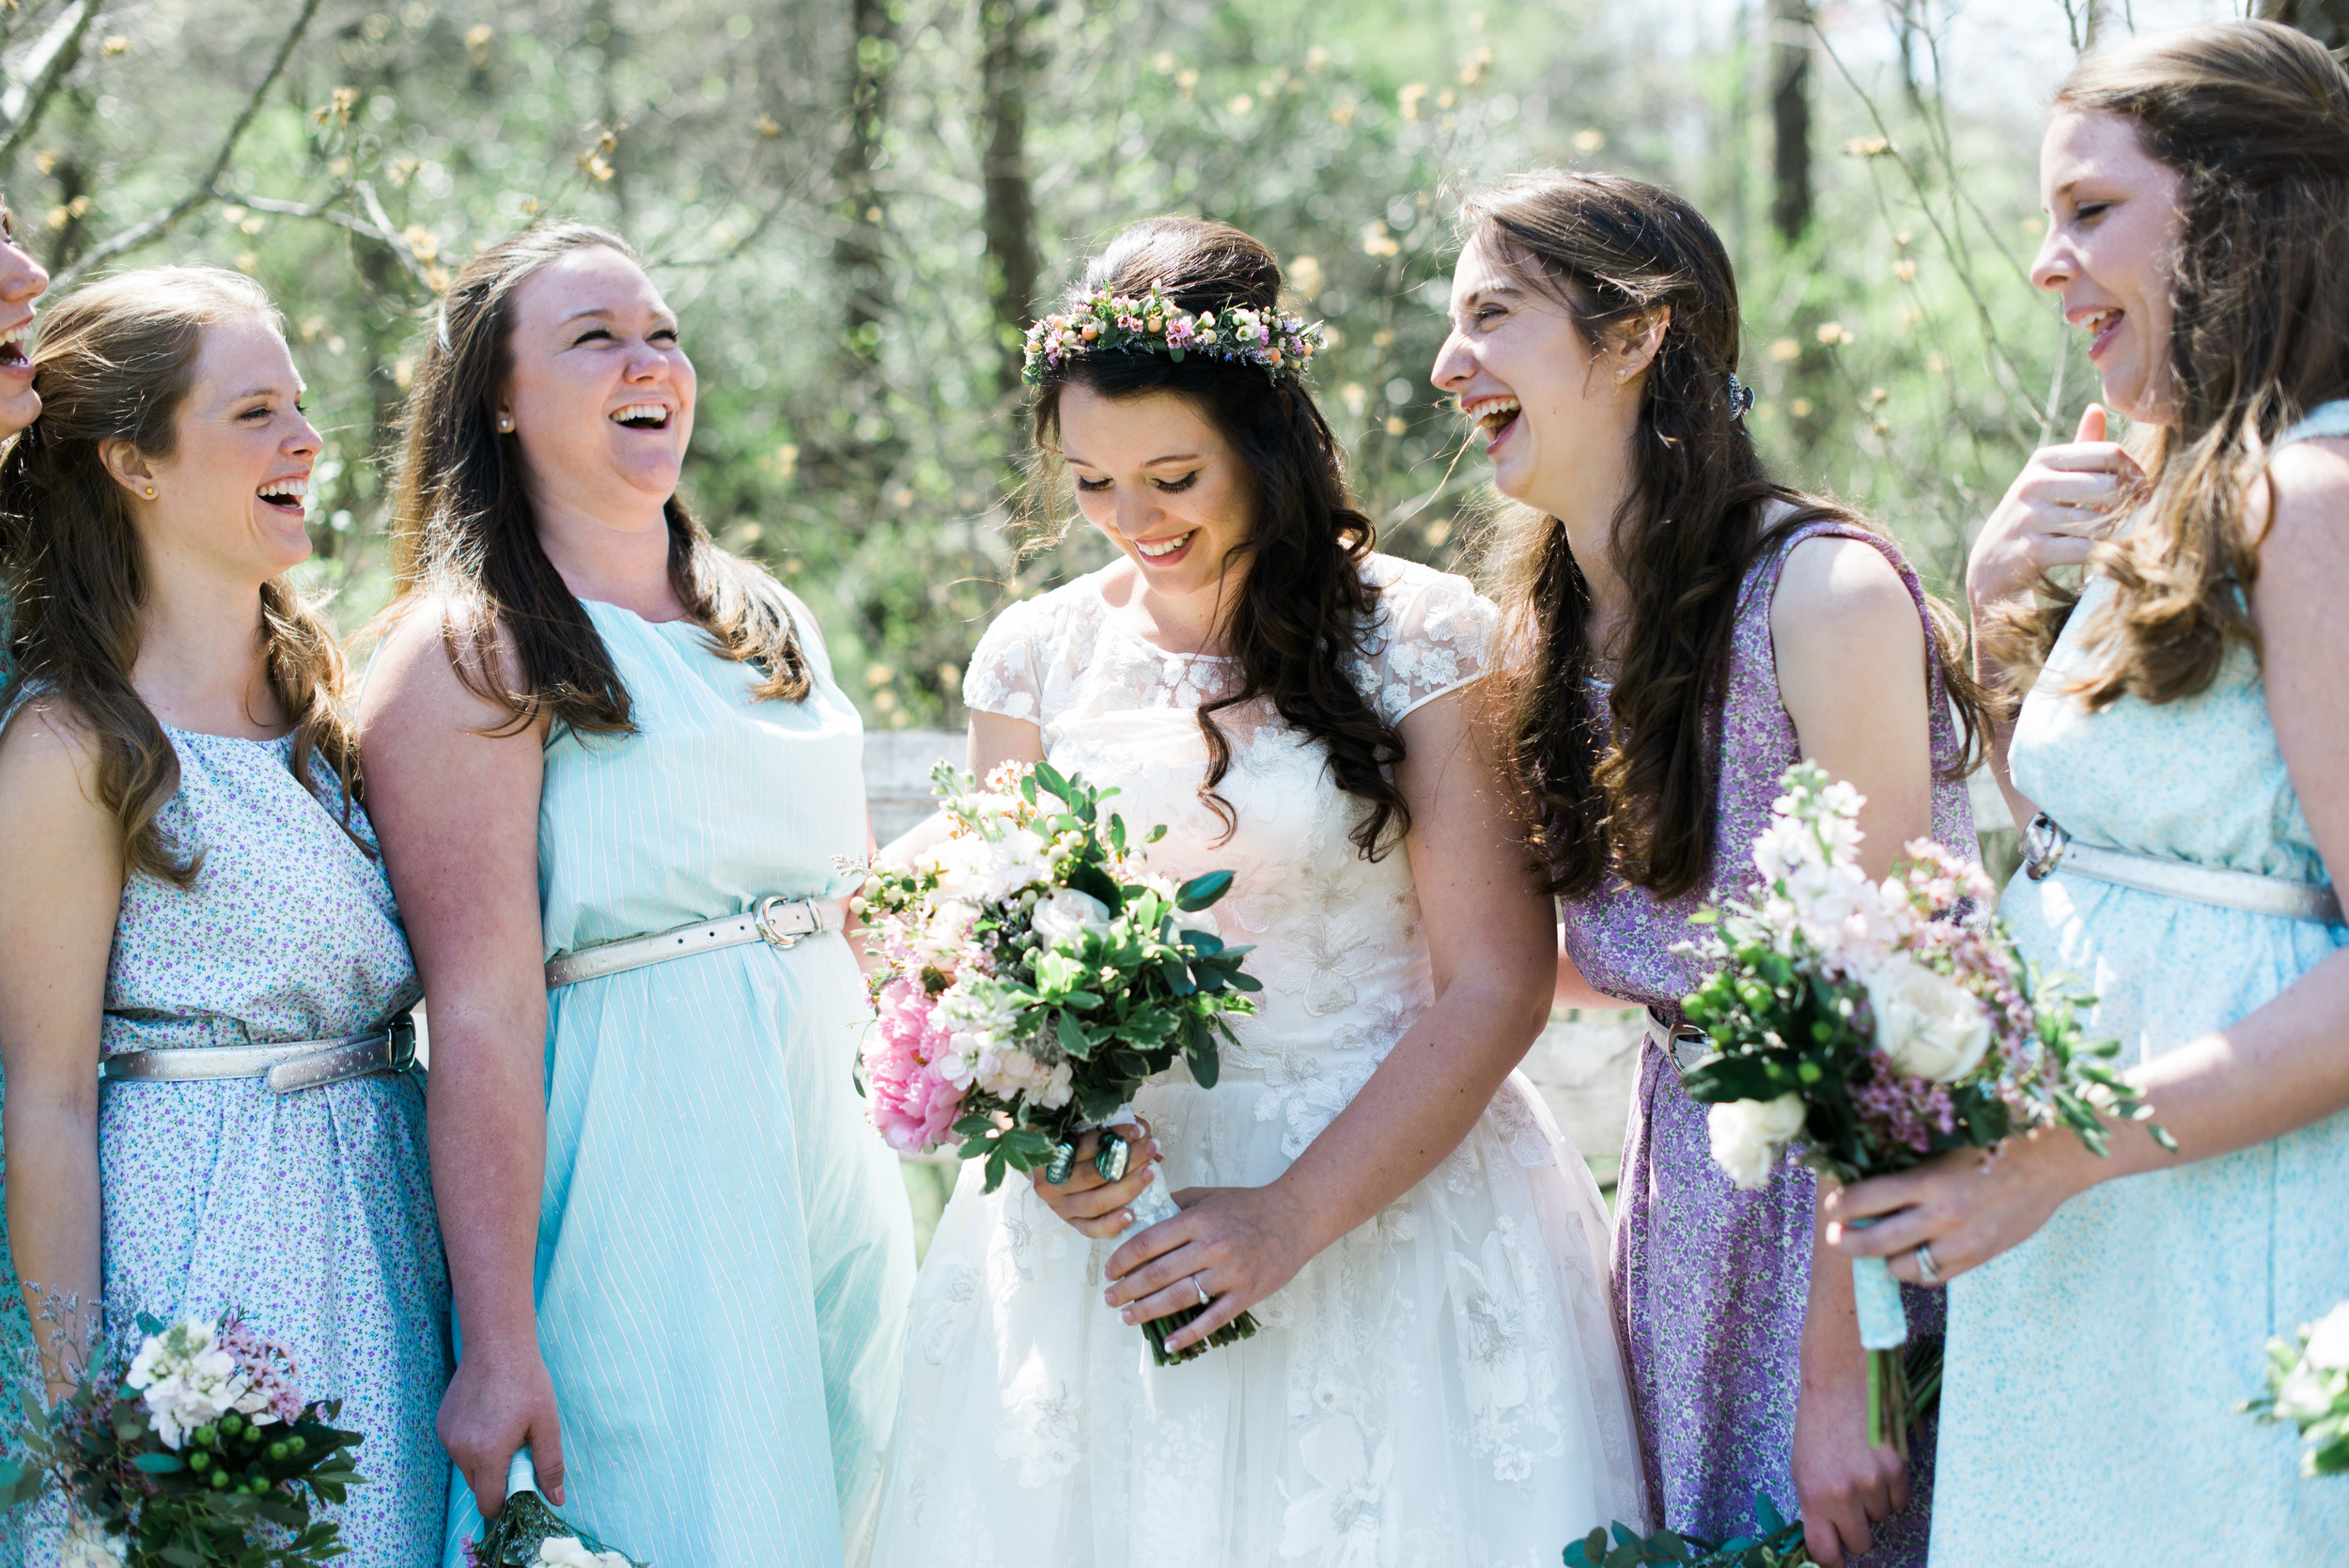 Jenevieve also MADE all of the bridesmaid's dresses. And yes, you guessed it, they match the groomsmen's bowties!